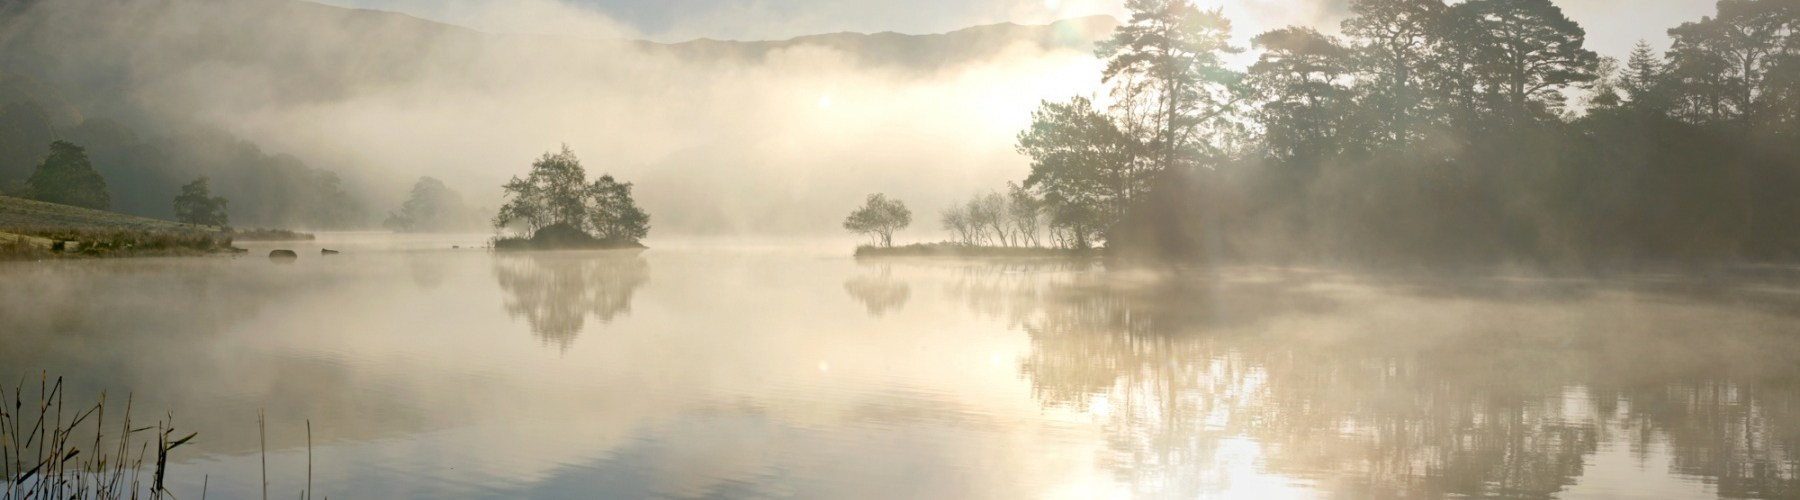 P0027-Steaming-Mist-on-Rydal